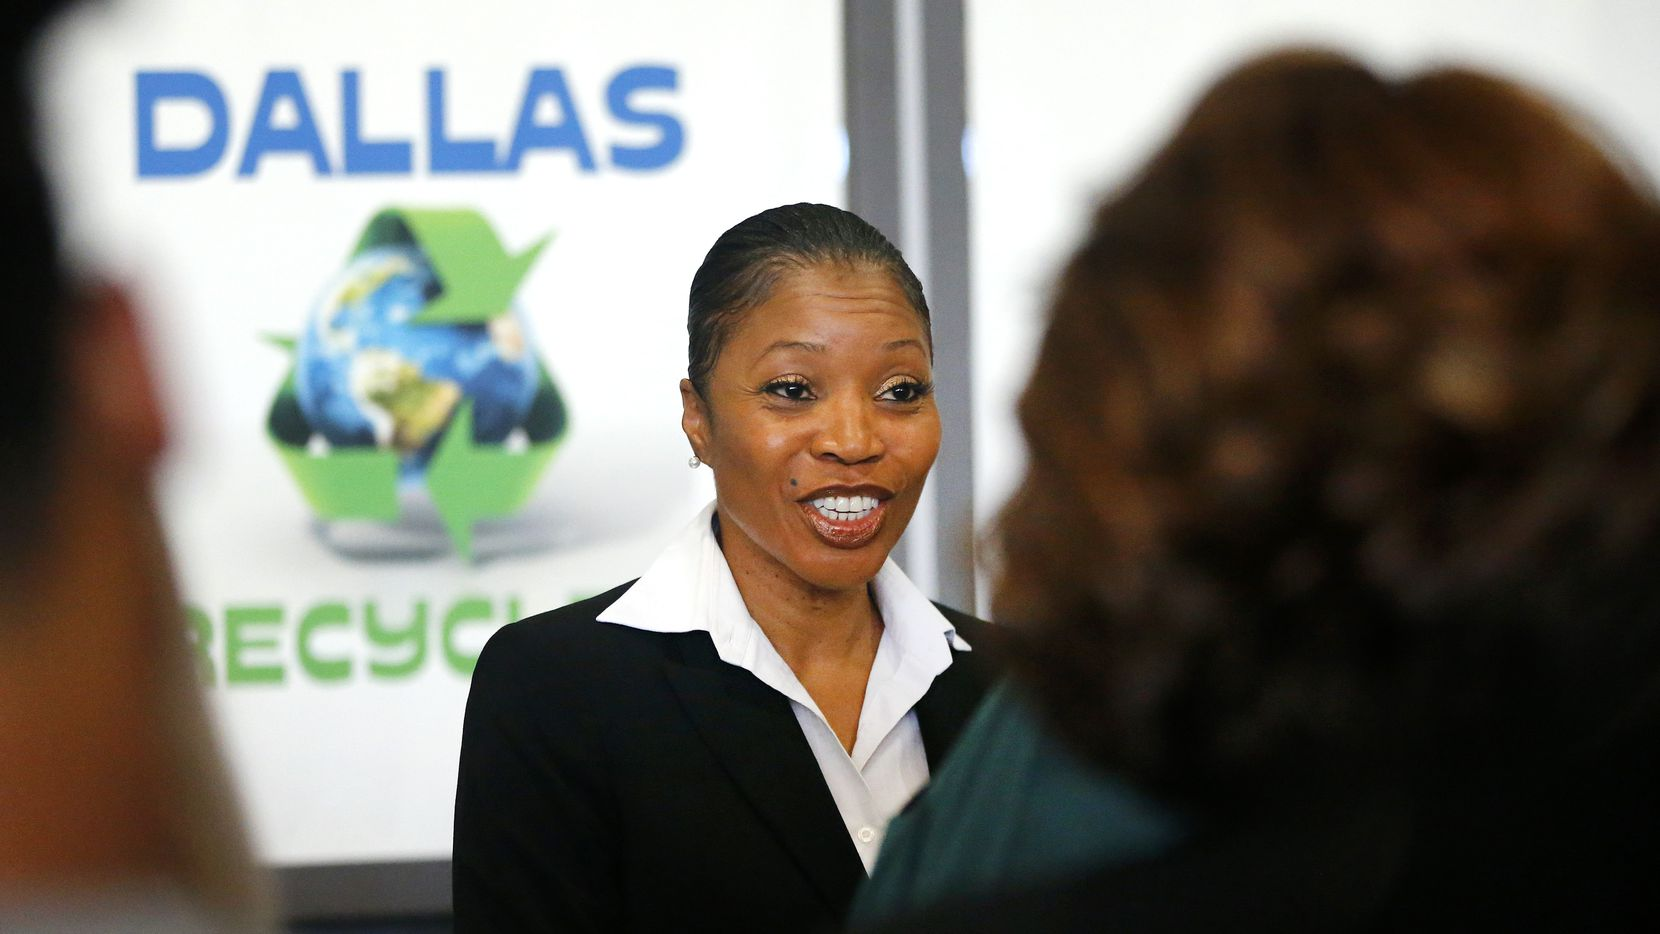 Candidate for new Dallas Police Chief U. Renee Hall, a Deputy Chief in the Detroit Police Department, listens to the concerns of residents during a meet and greet at Dallas City Hall, Tuesday, July 11, 2017. (Tom Fox/The Dallas Morning News)